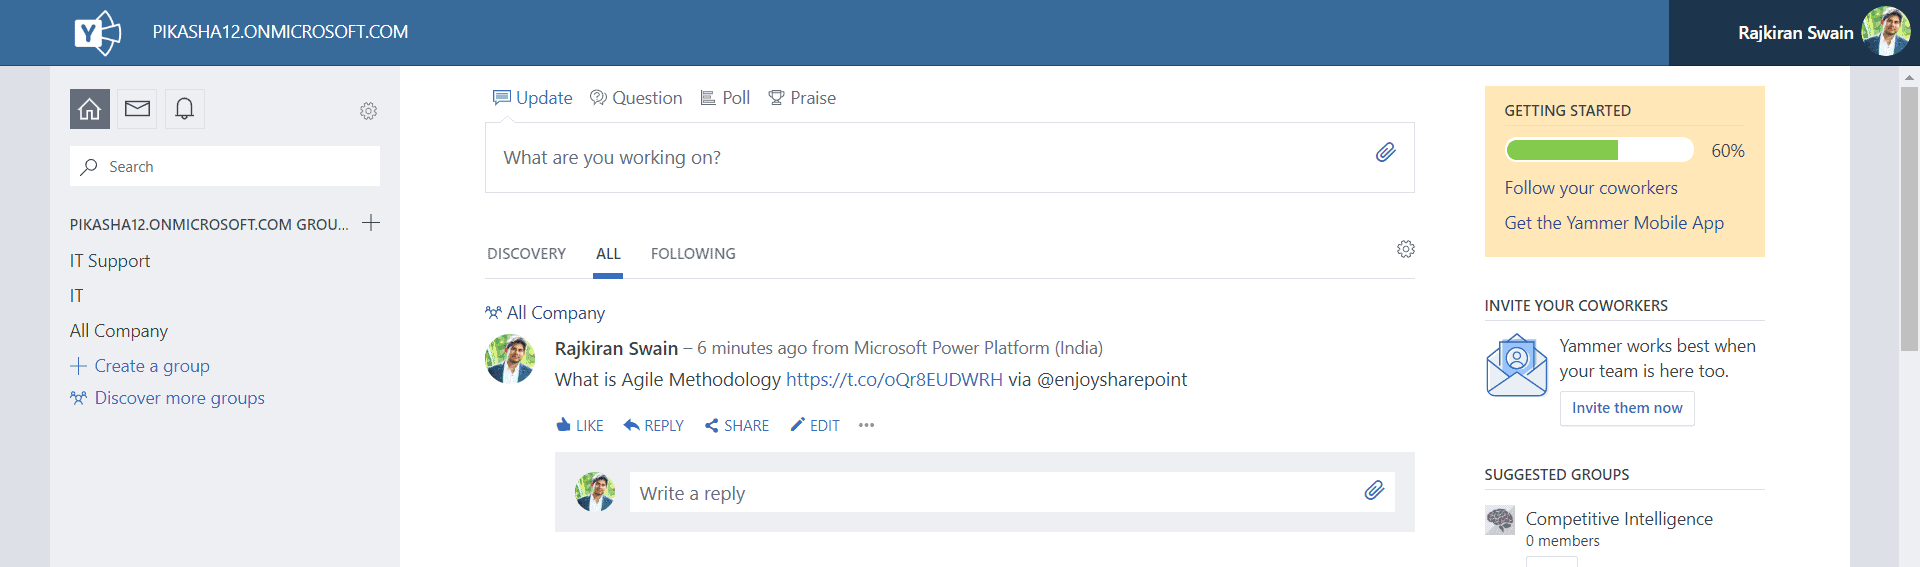 Add my latest Twitter post to Yammer using Power Automate